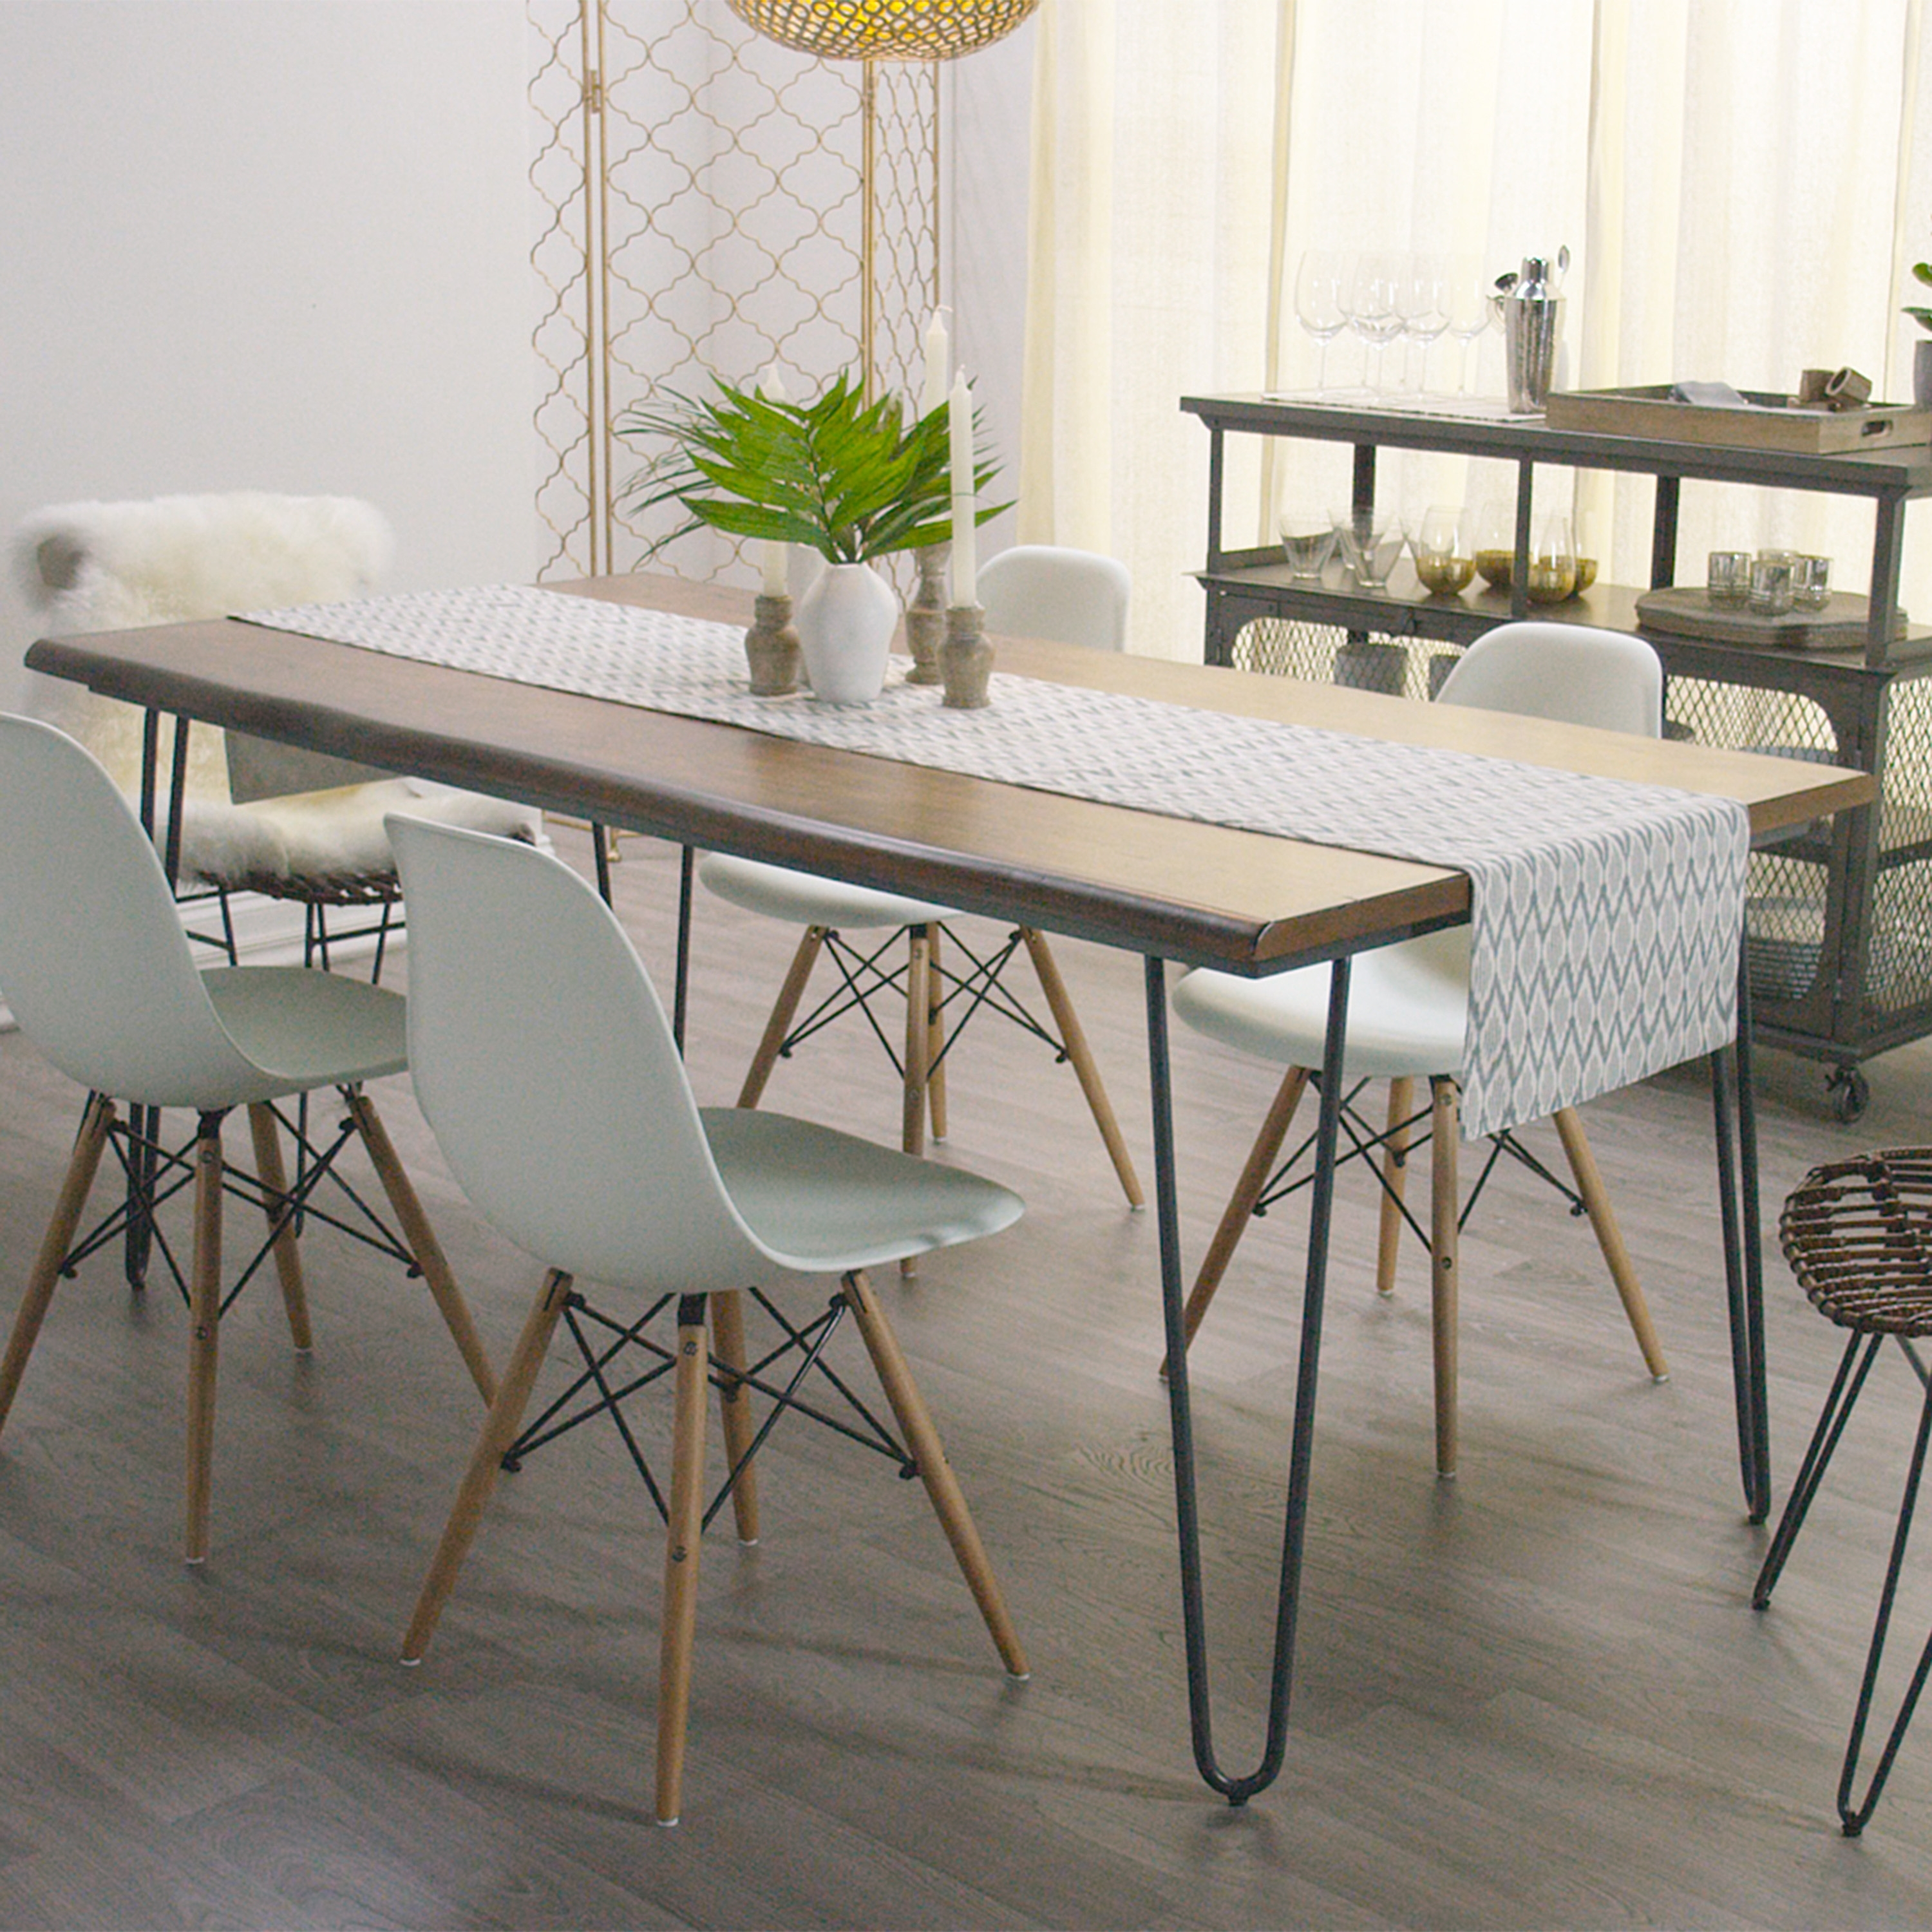 World Market Bedroom Furniture Dining Table Distressed Wood Regarding Most Popular Market Dining Tables (View 7 of 20)